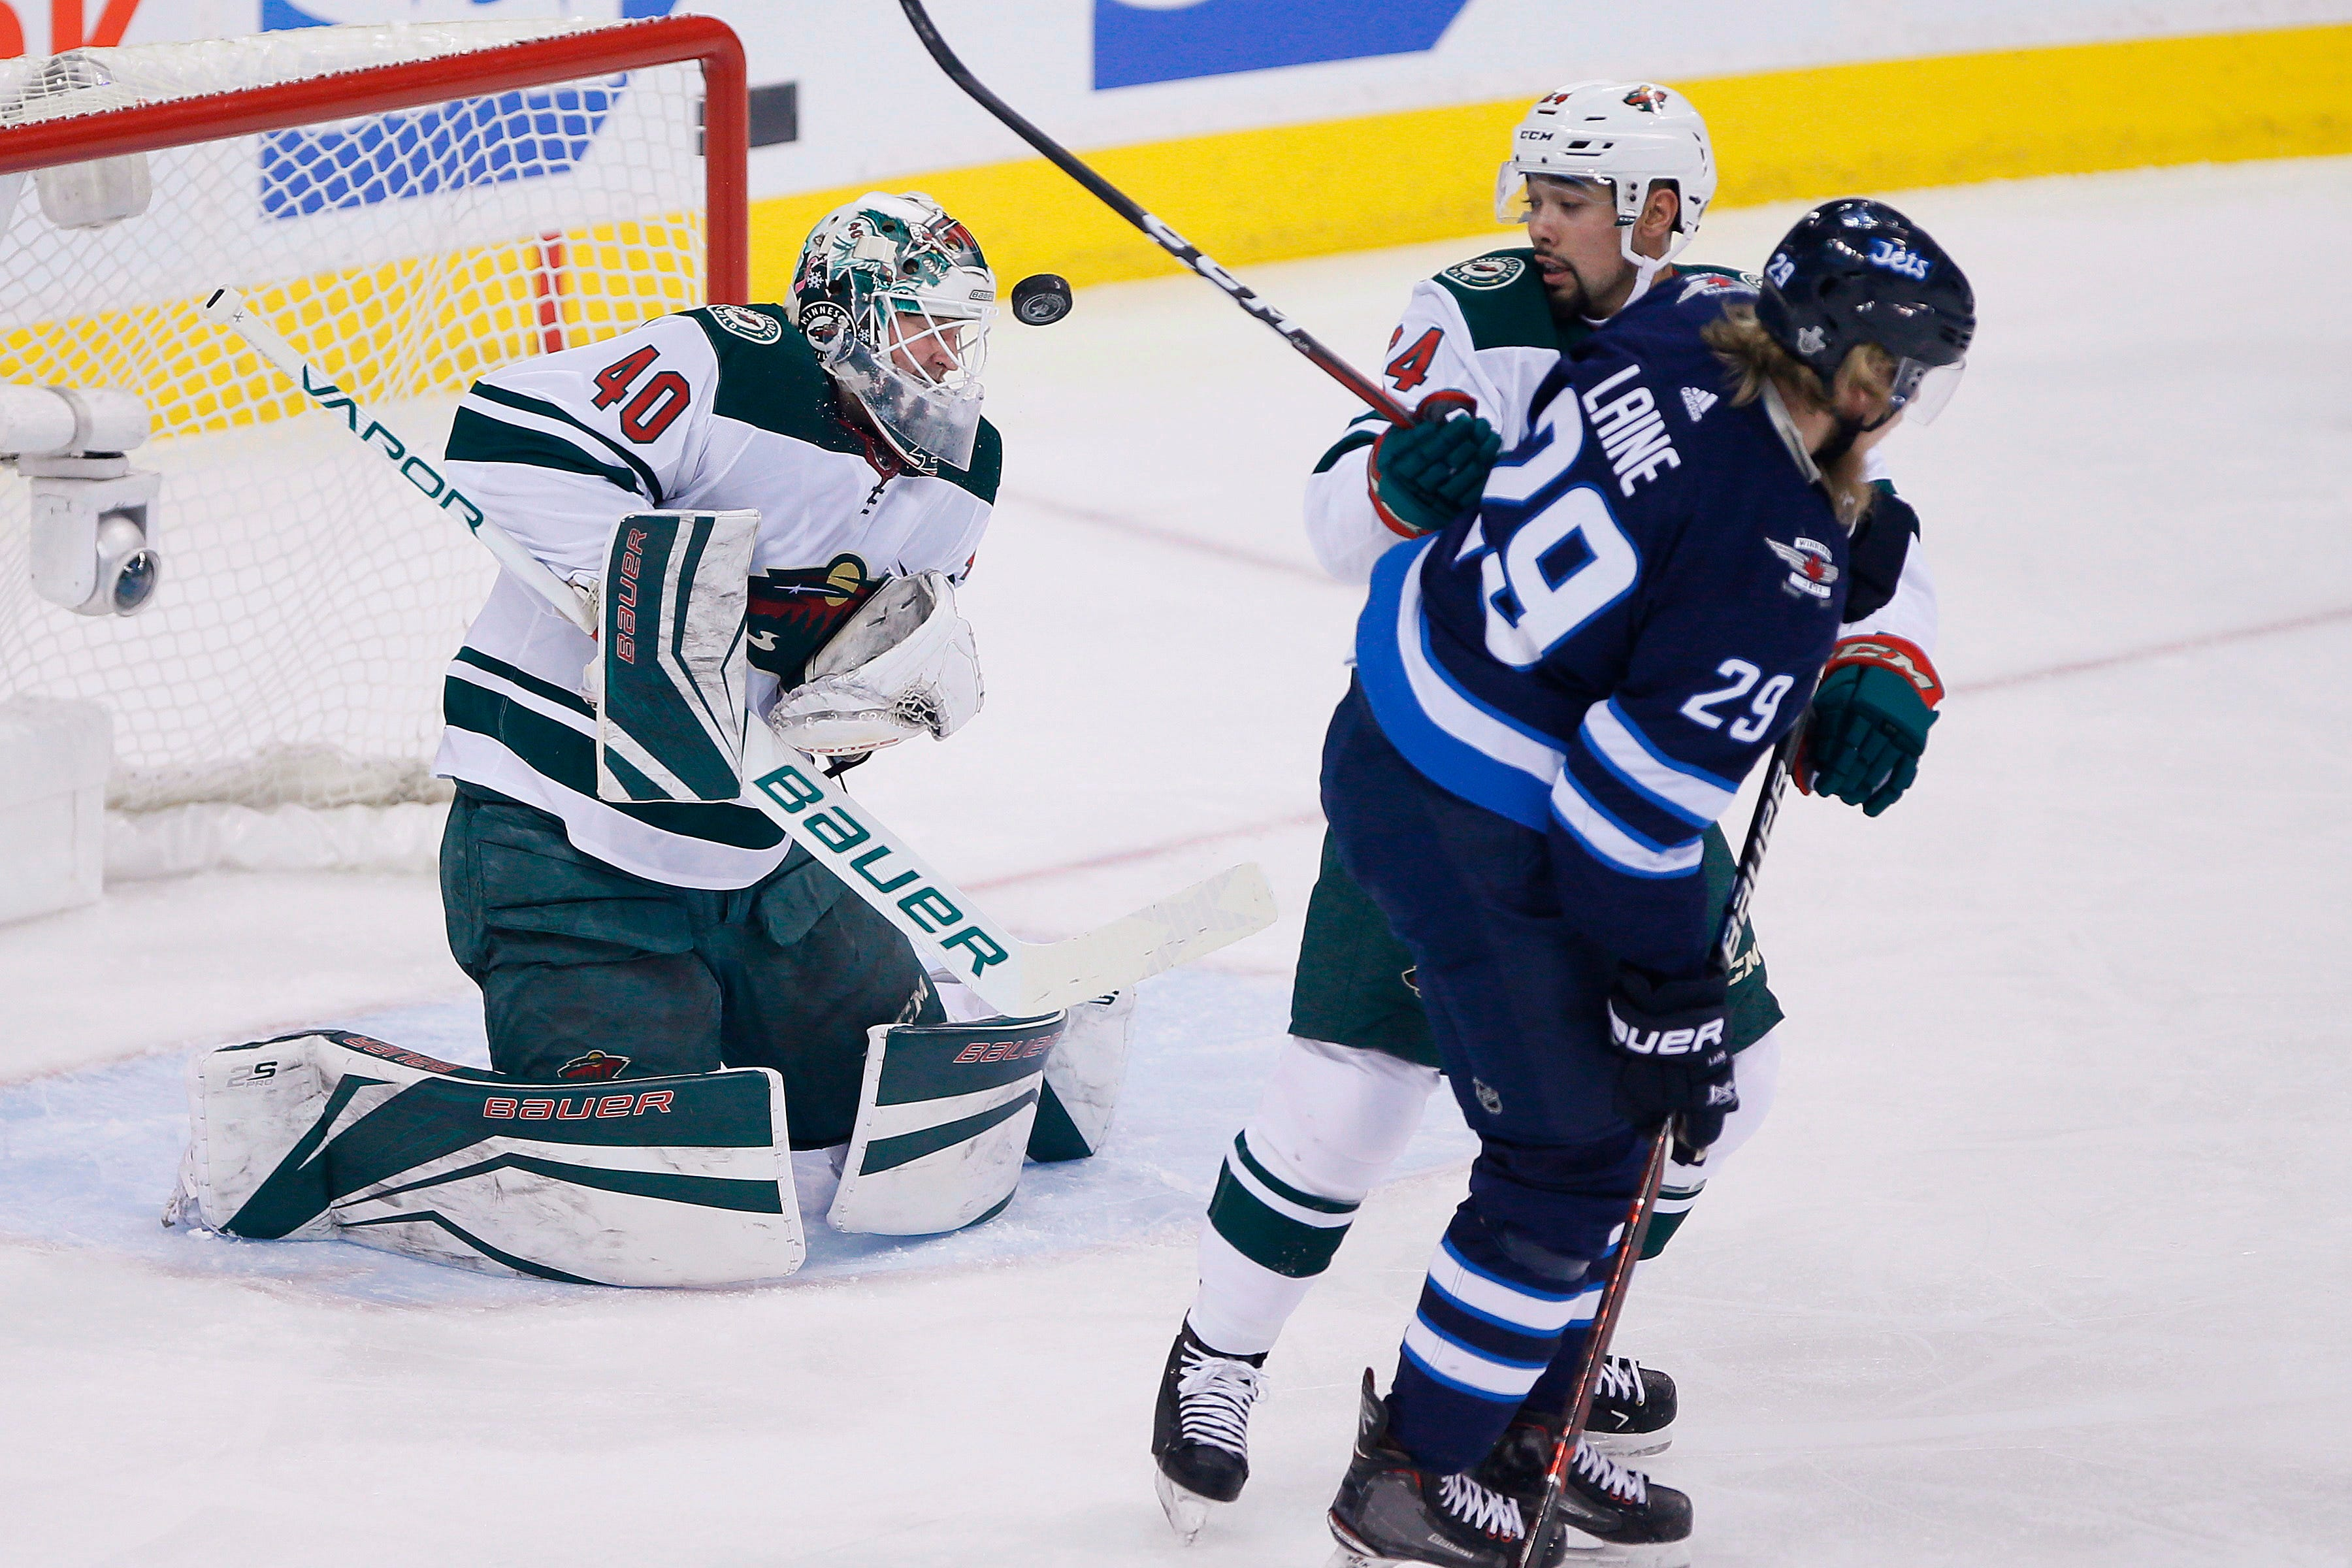 Jets beat Wild 4-1 to take 2-0 series lead